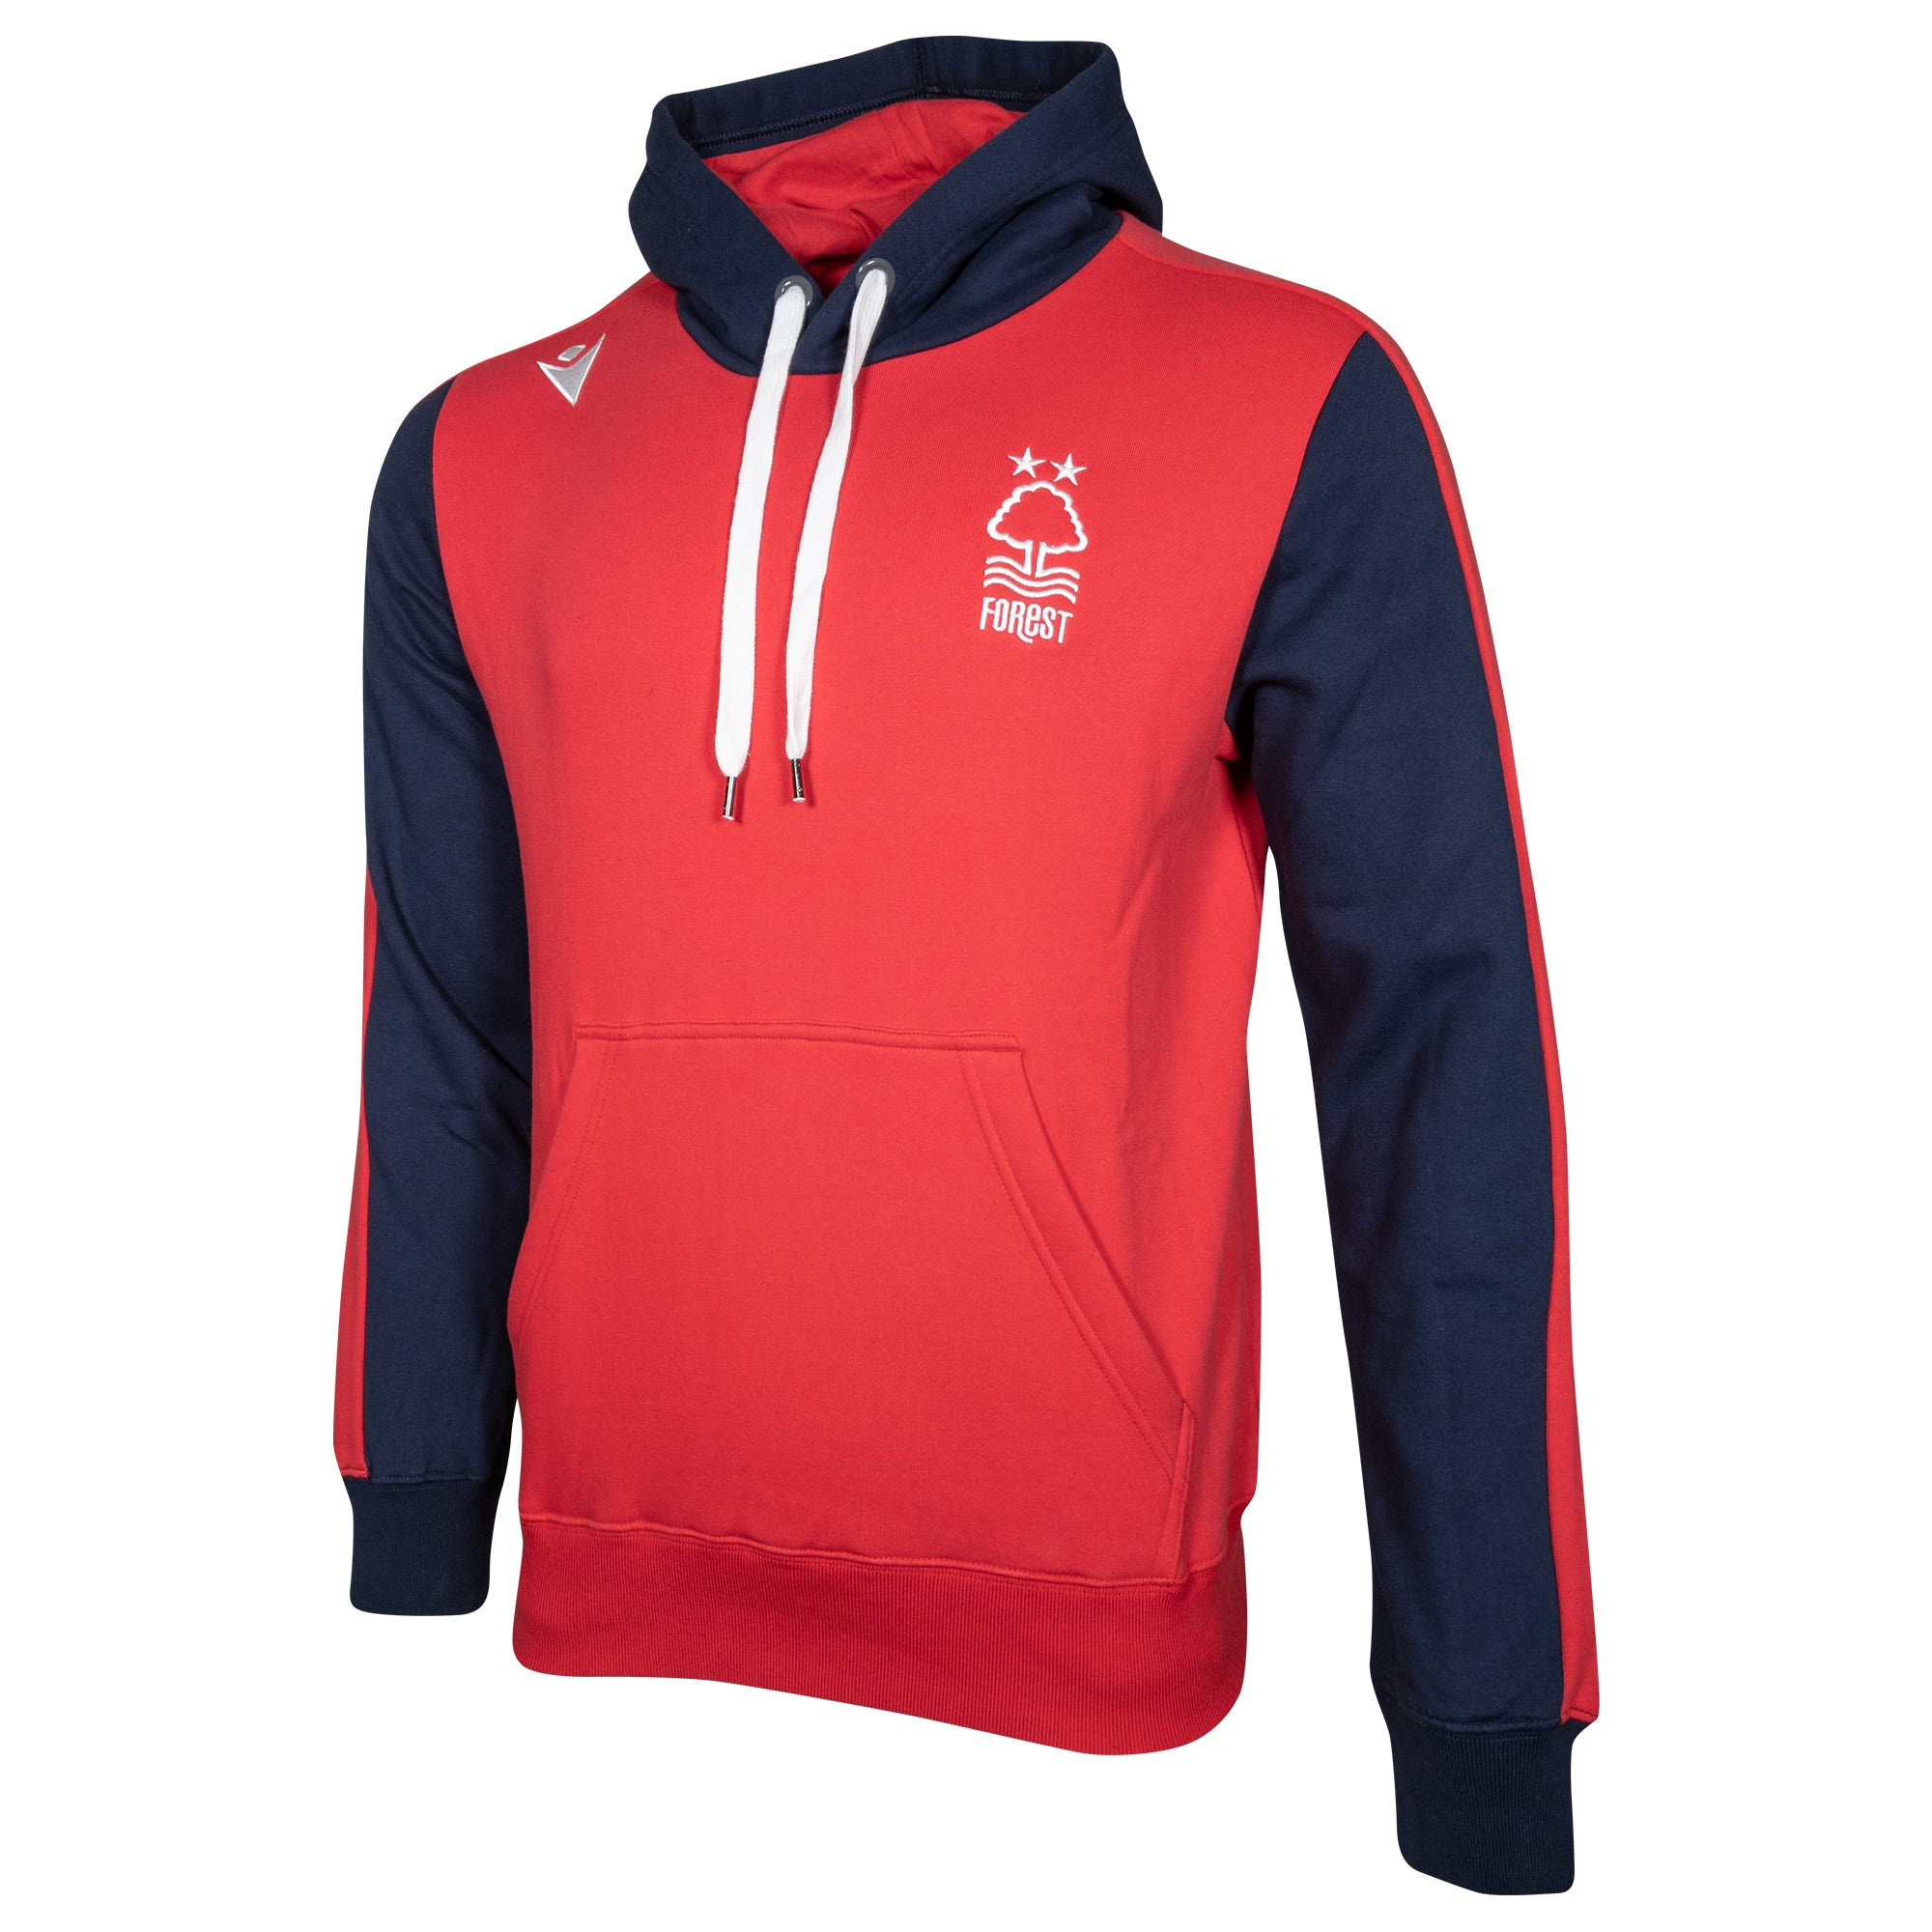 NFFC Junior Player Travel Hoodie 2020/21